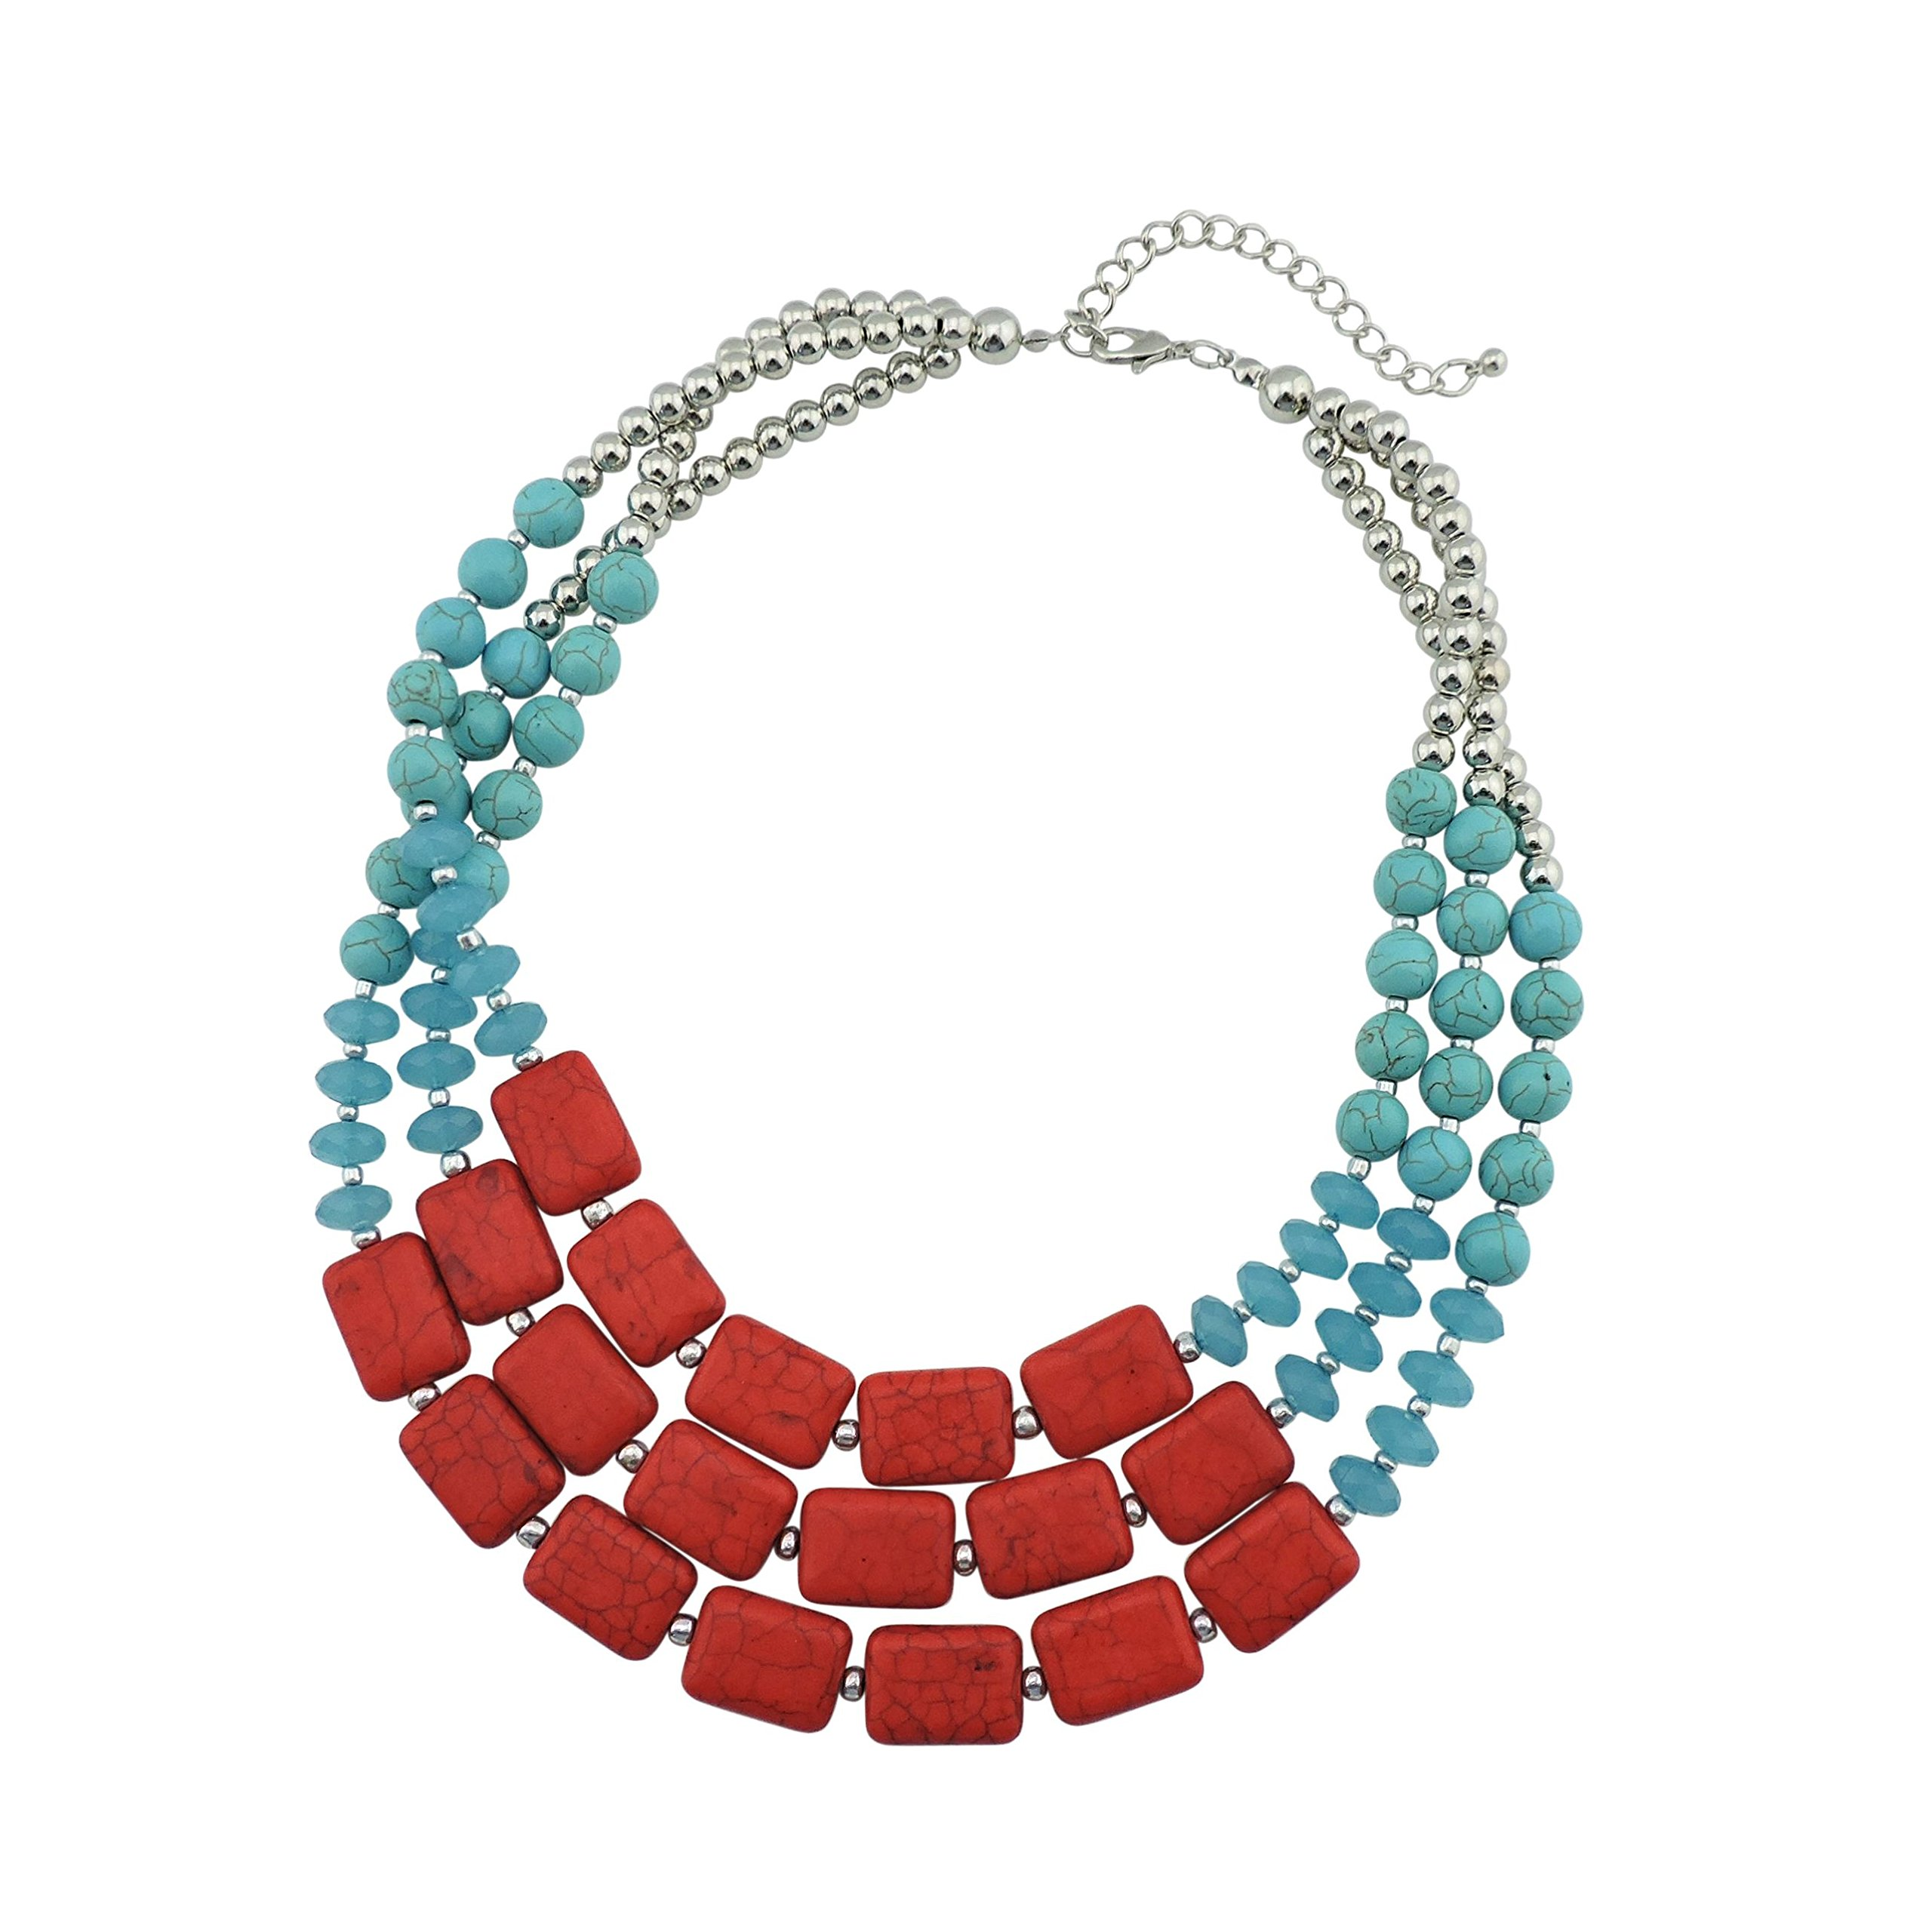 Bocar Statement Strand Turquoise Colorful Chunky Necklace for Women Gifts (NK-10268-turquoise+red)